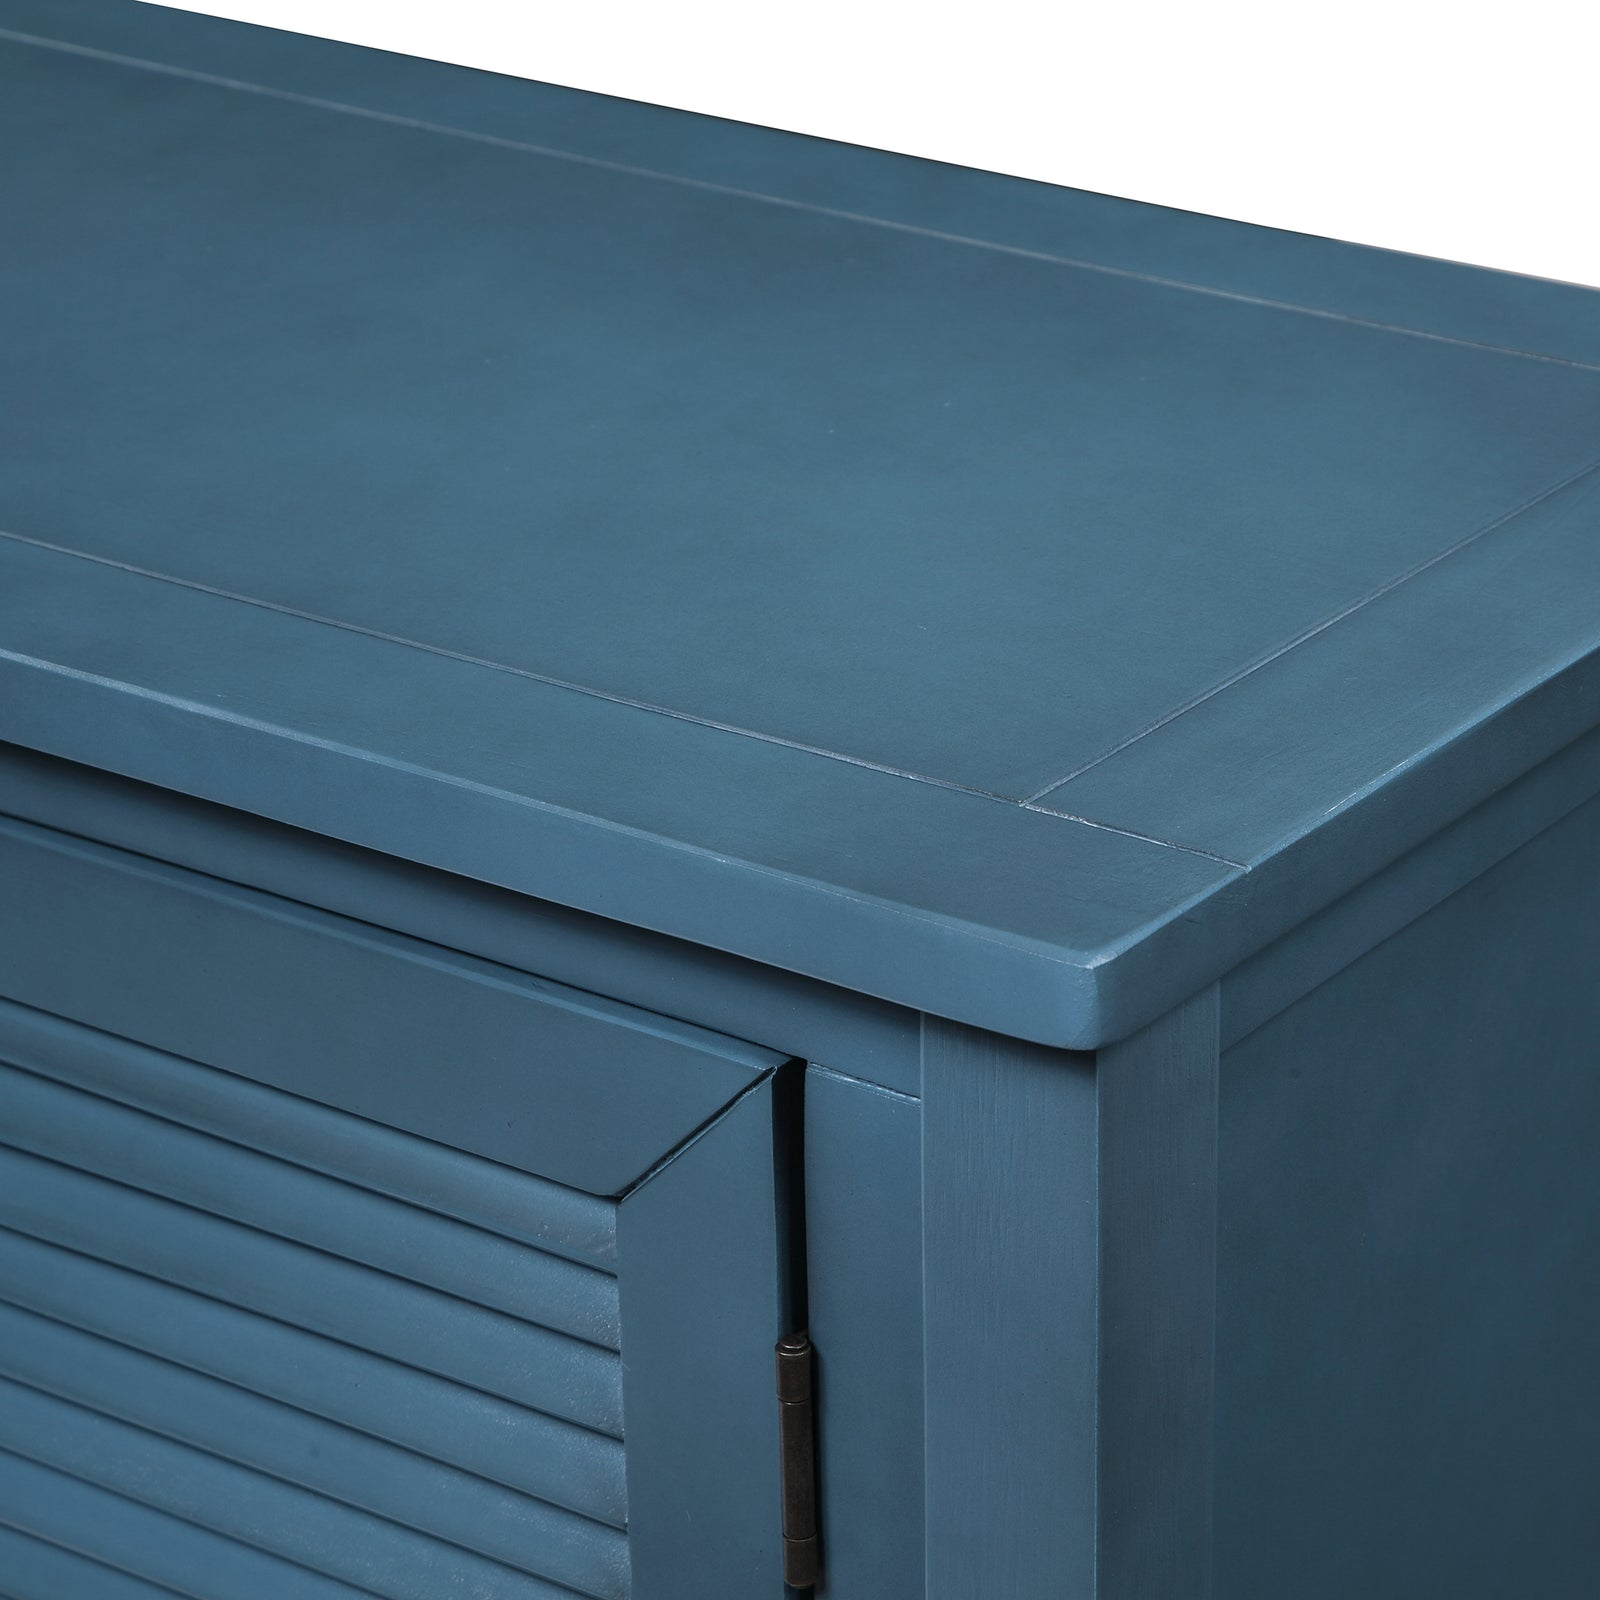 Slate Gray Console Table Sideboard with Shutter Doors Two Storage Drawers and Bottom Shelf BH196438